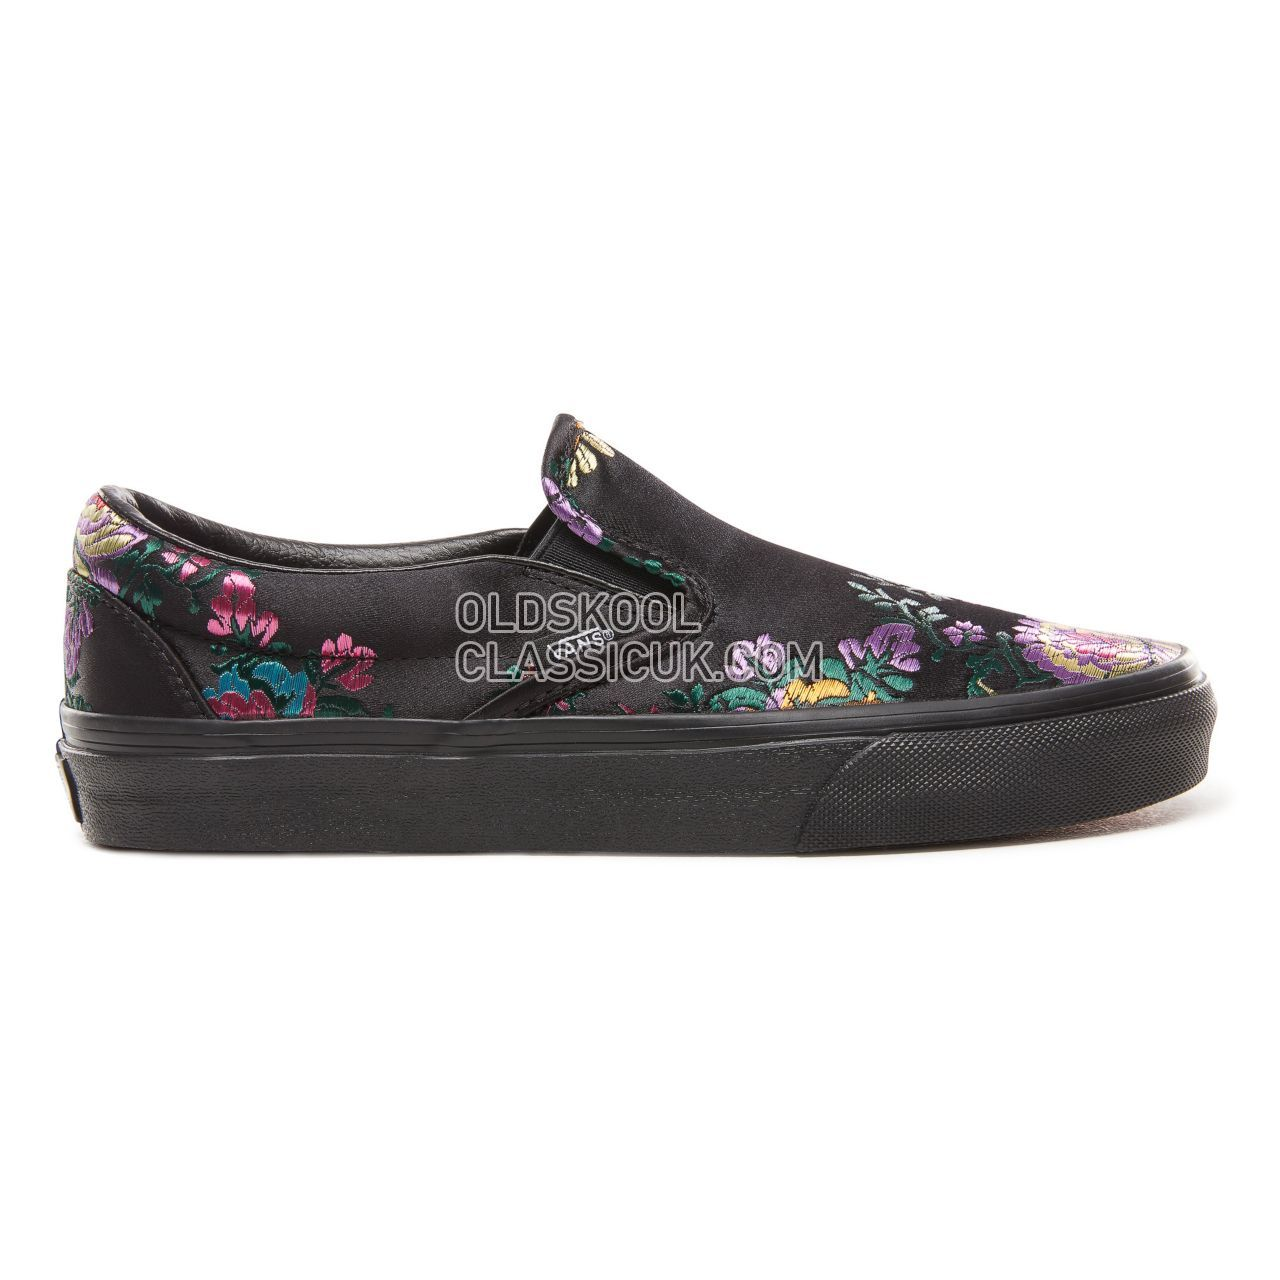 big sale outlet 2019 hot sale Vans Festival Satin Classic Slip-On Sneakers Womens ...